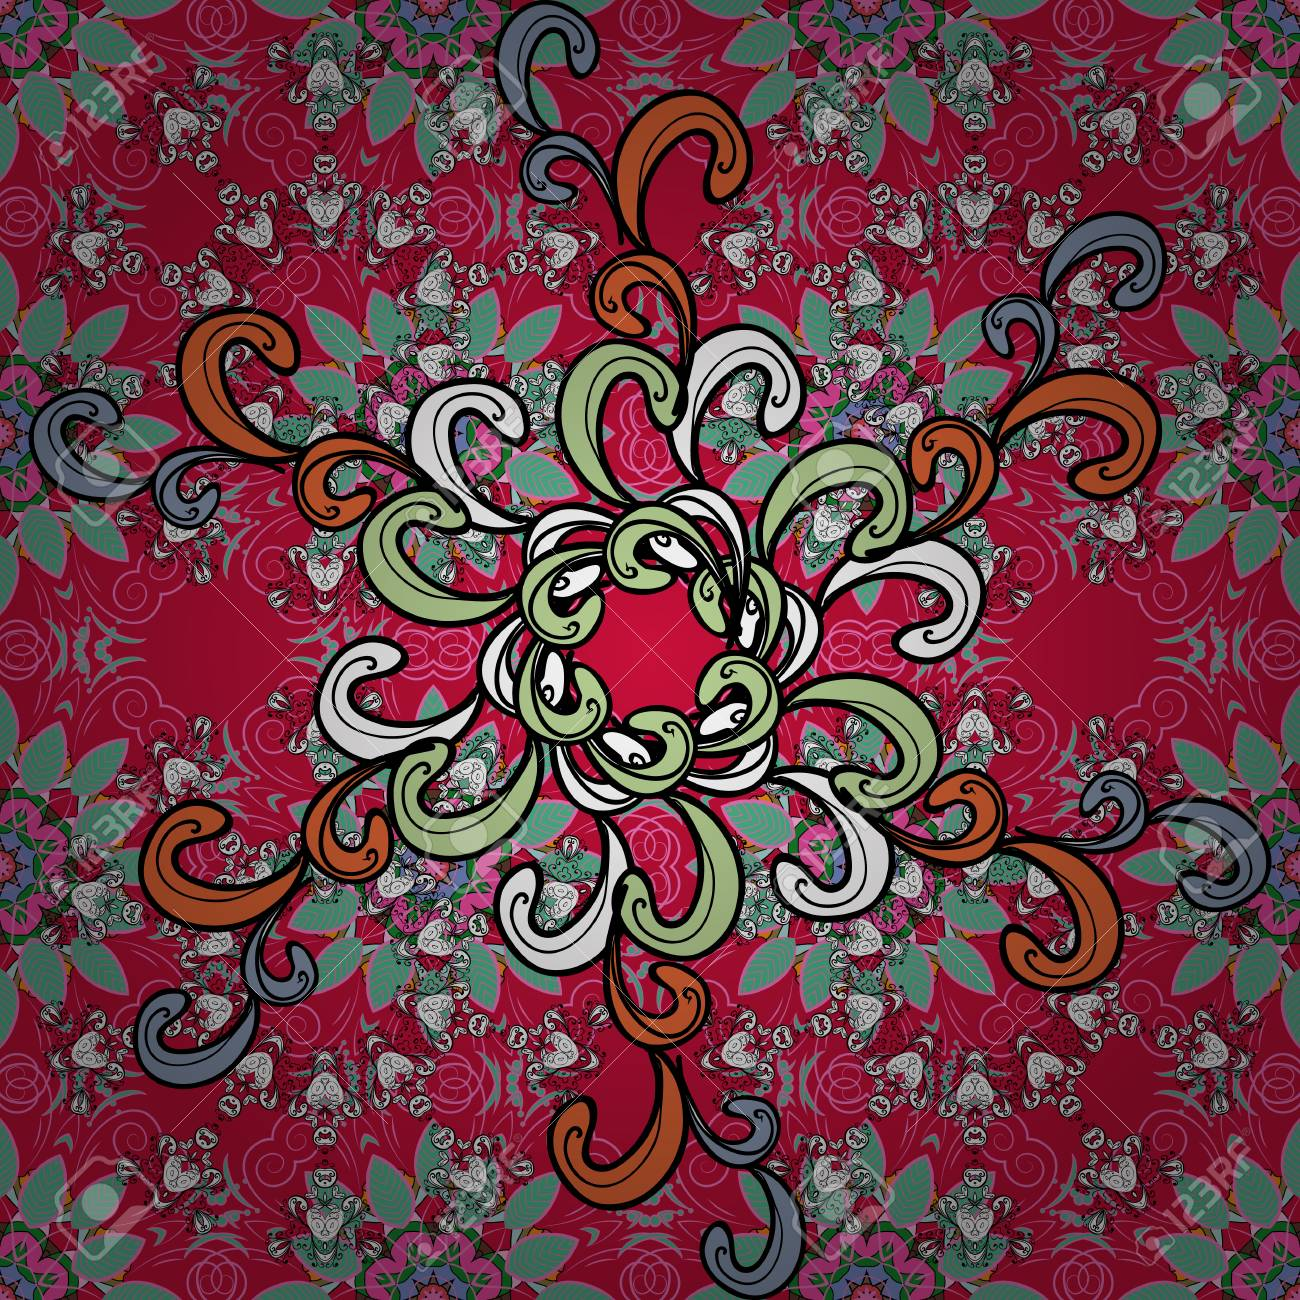 Background Texture Sketch Floral Theme In Red Black And Pink